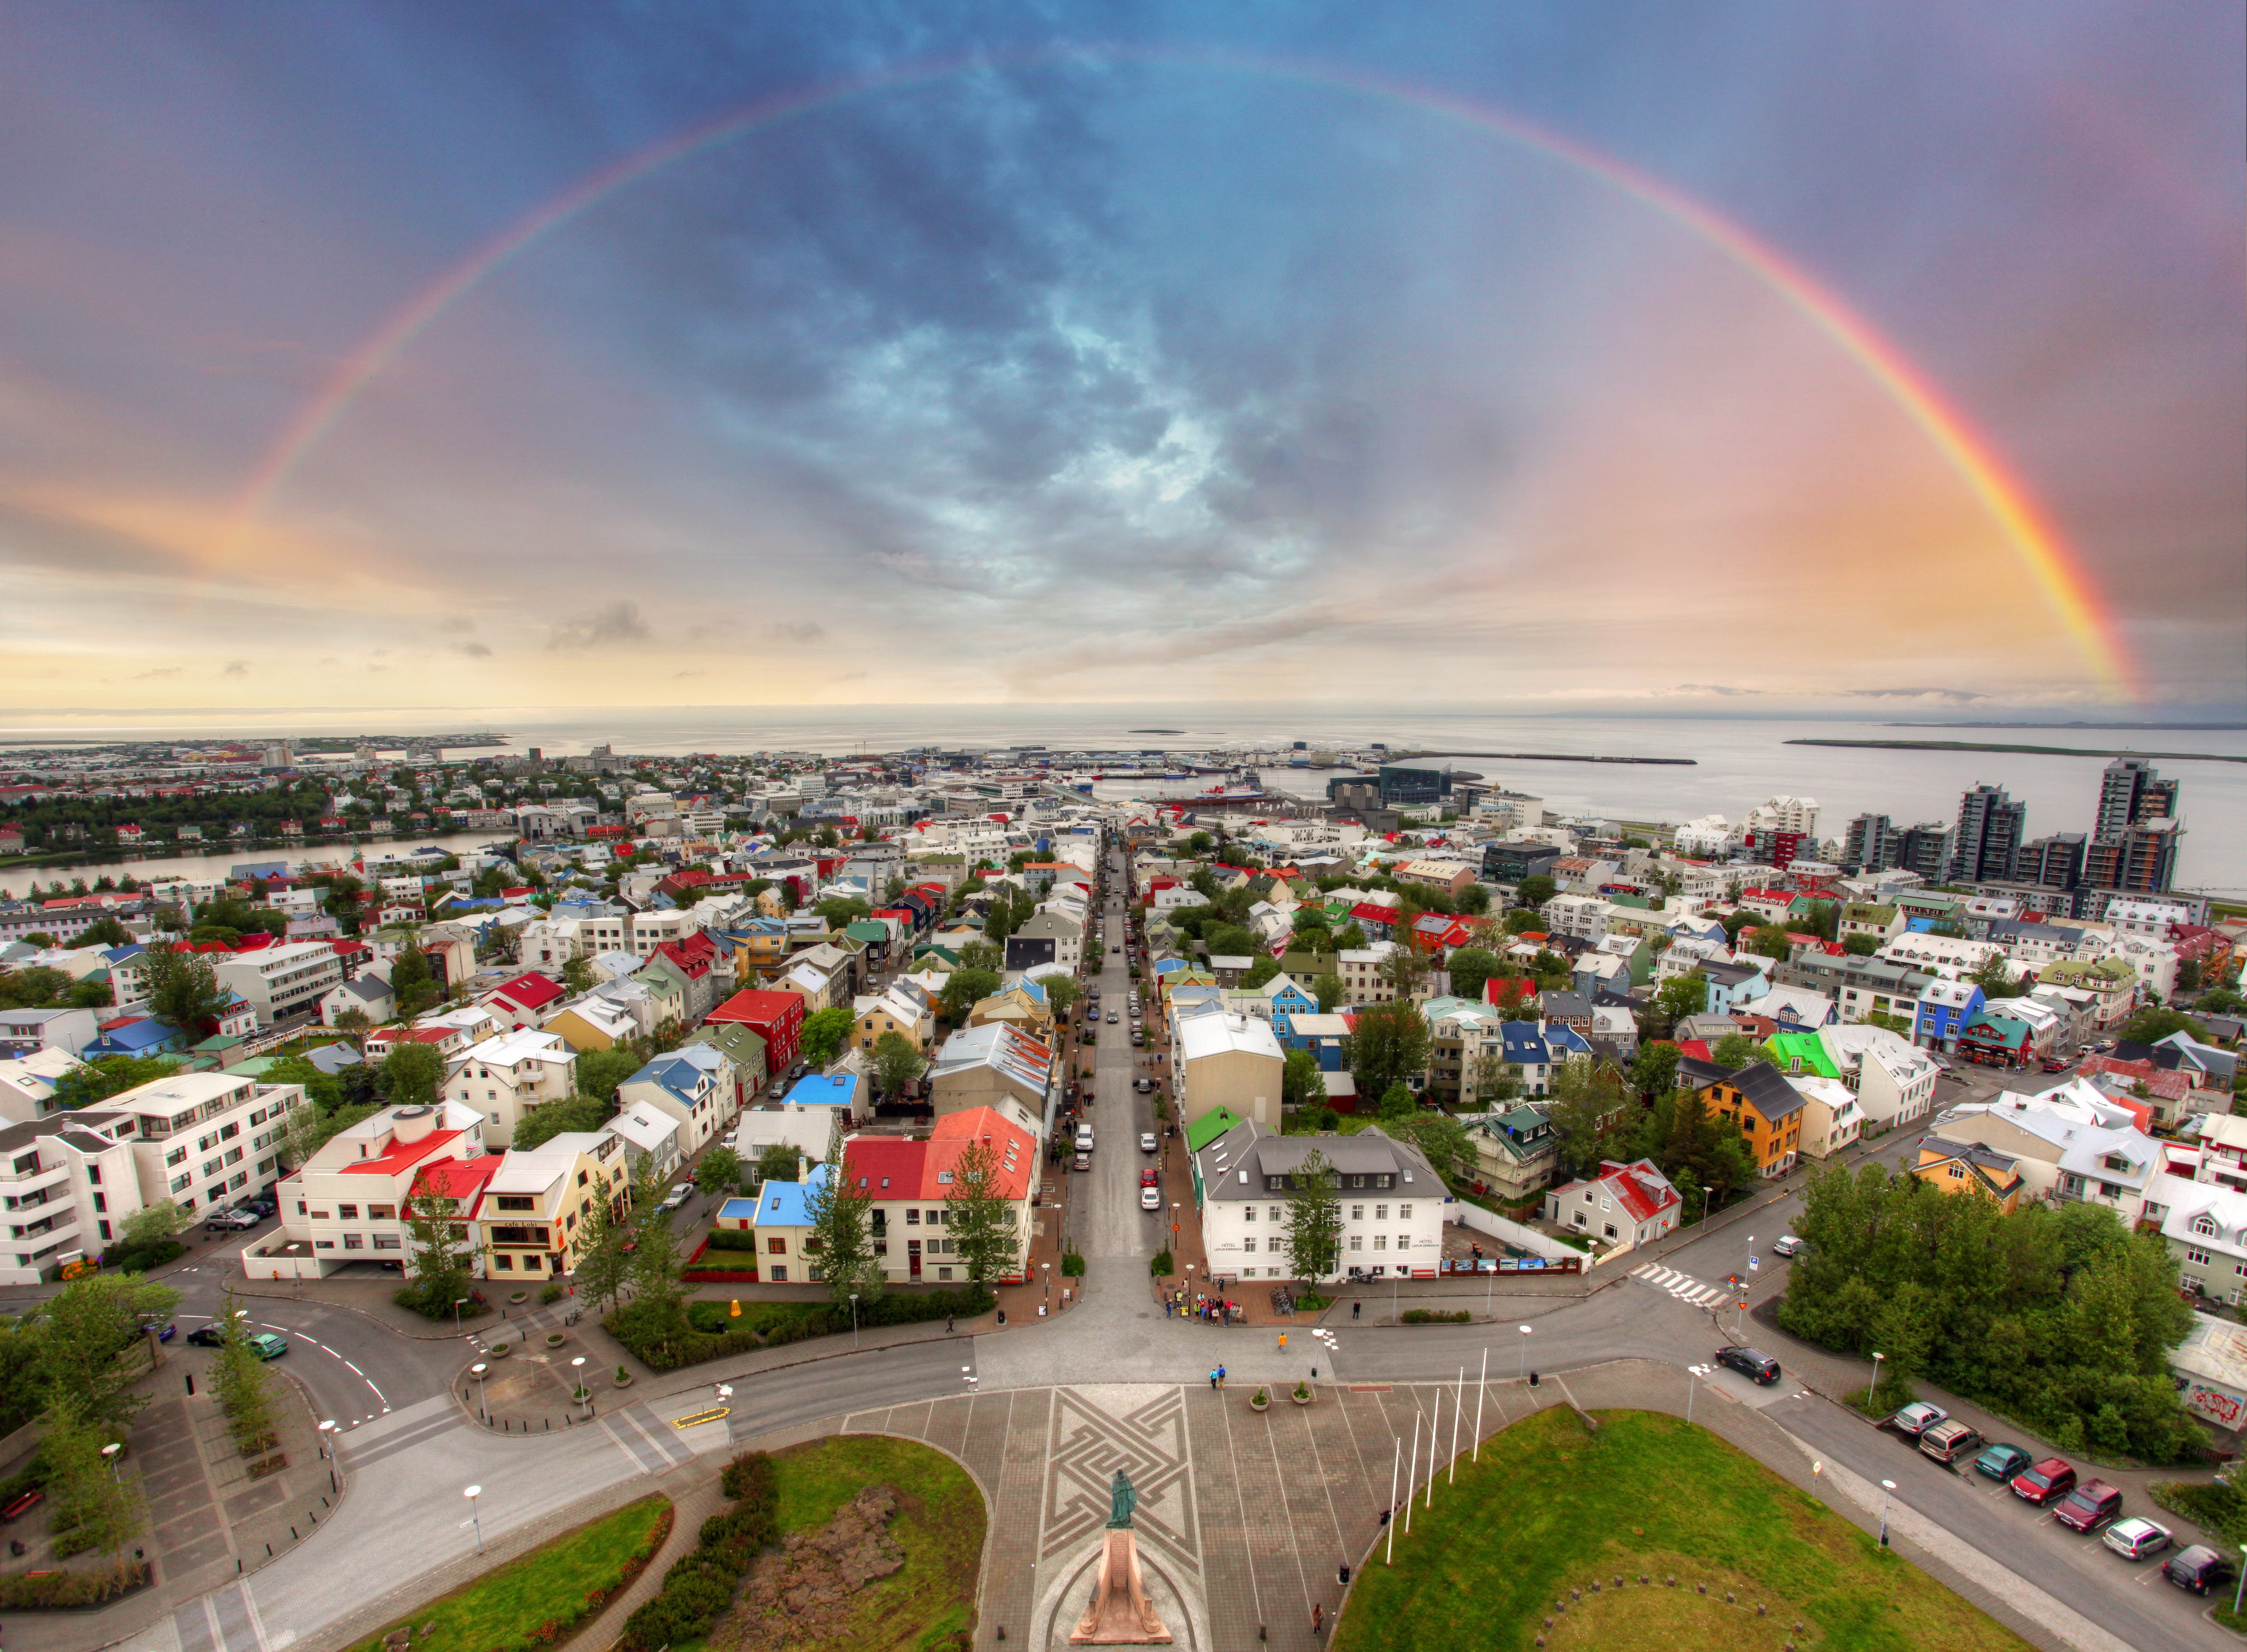 Reykjavik Walking Tour | Explore Iceland's Capital with a